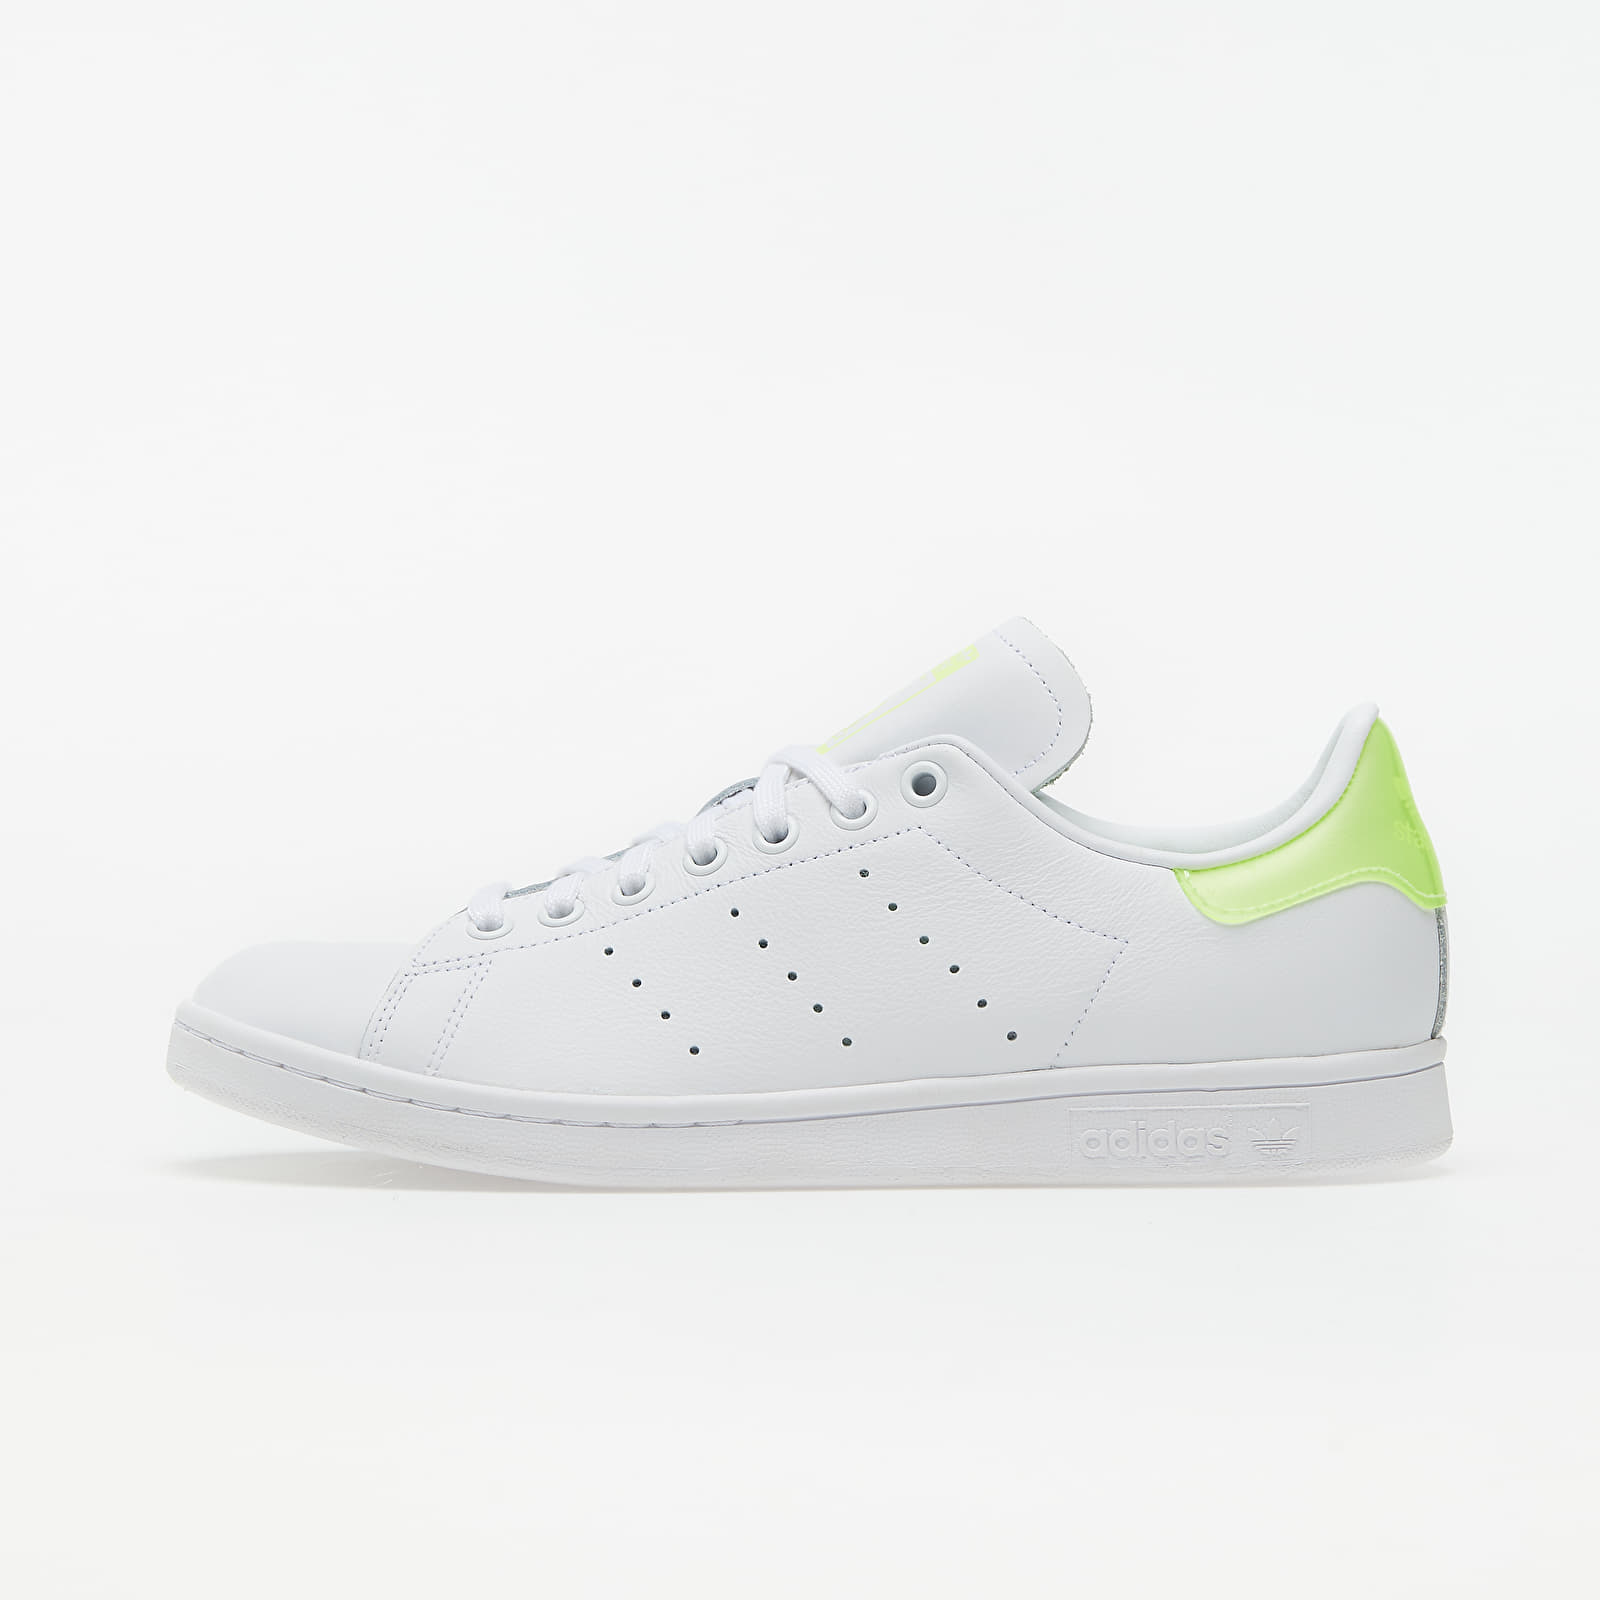 adidas Stan Smith W Ftw White/ Hi-Res Yellow/ Ftw White EUR 40 2/3